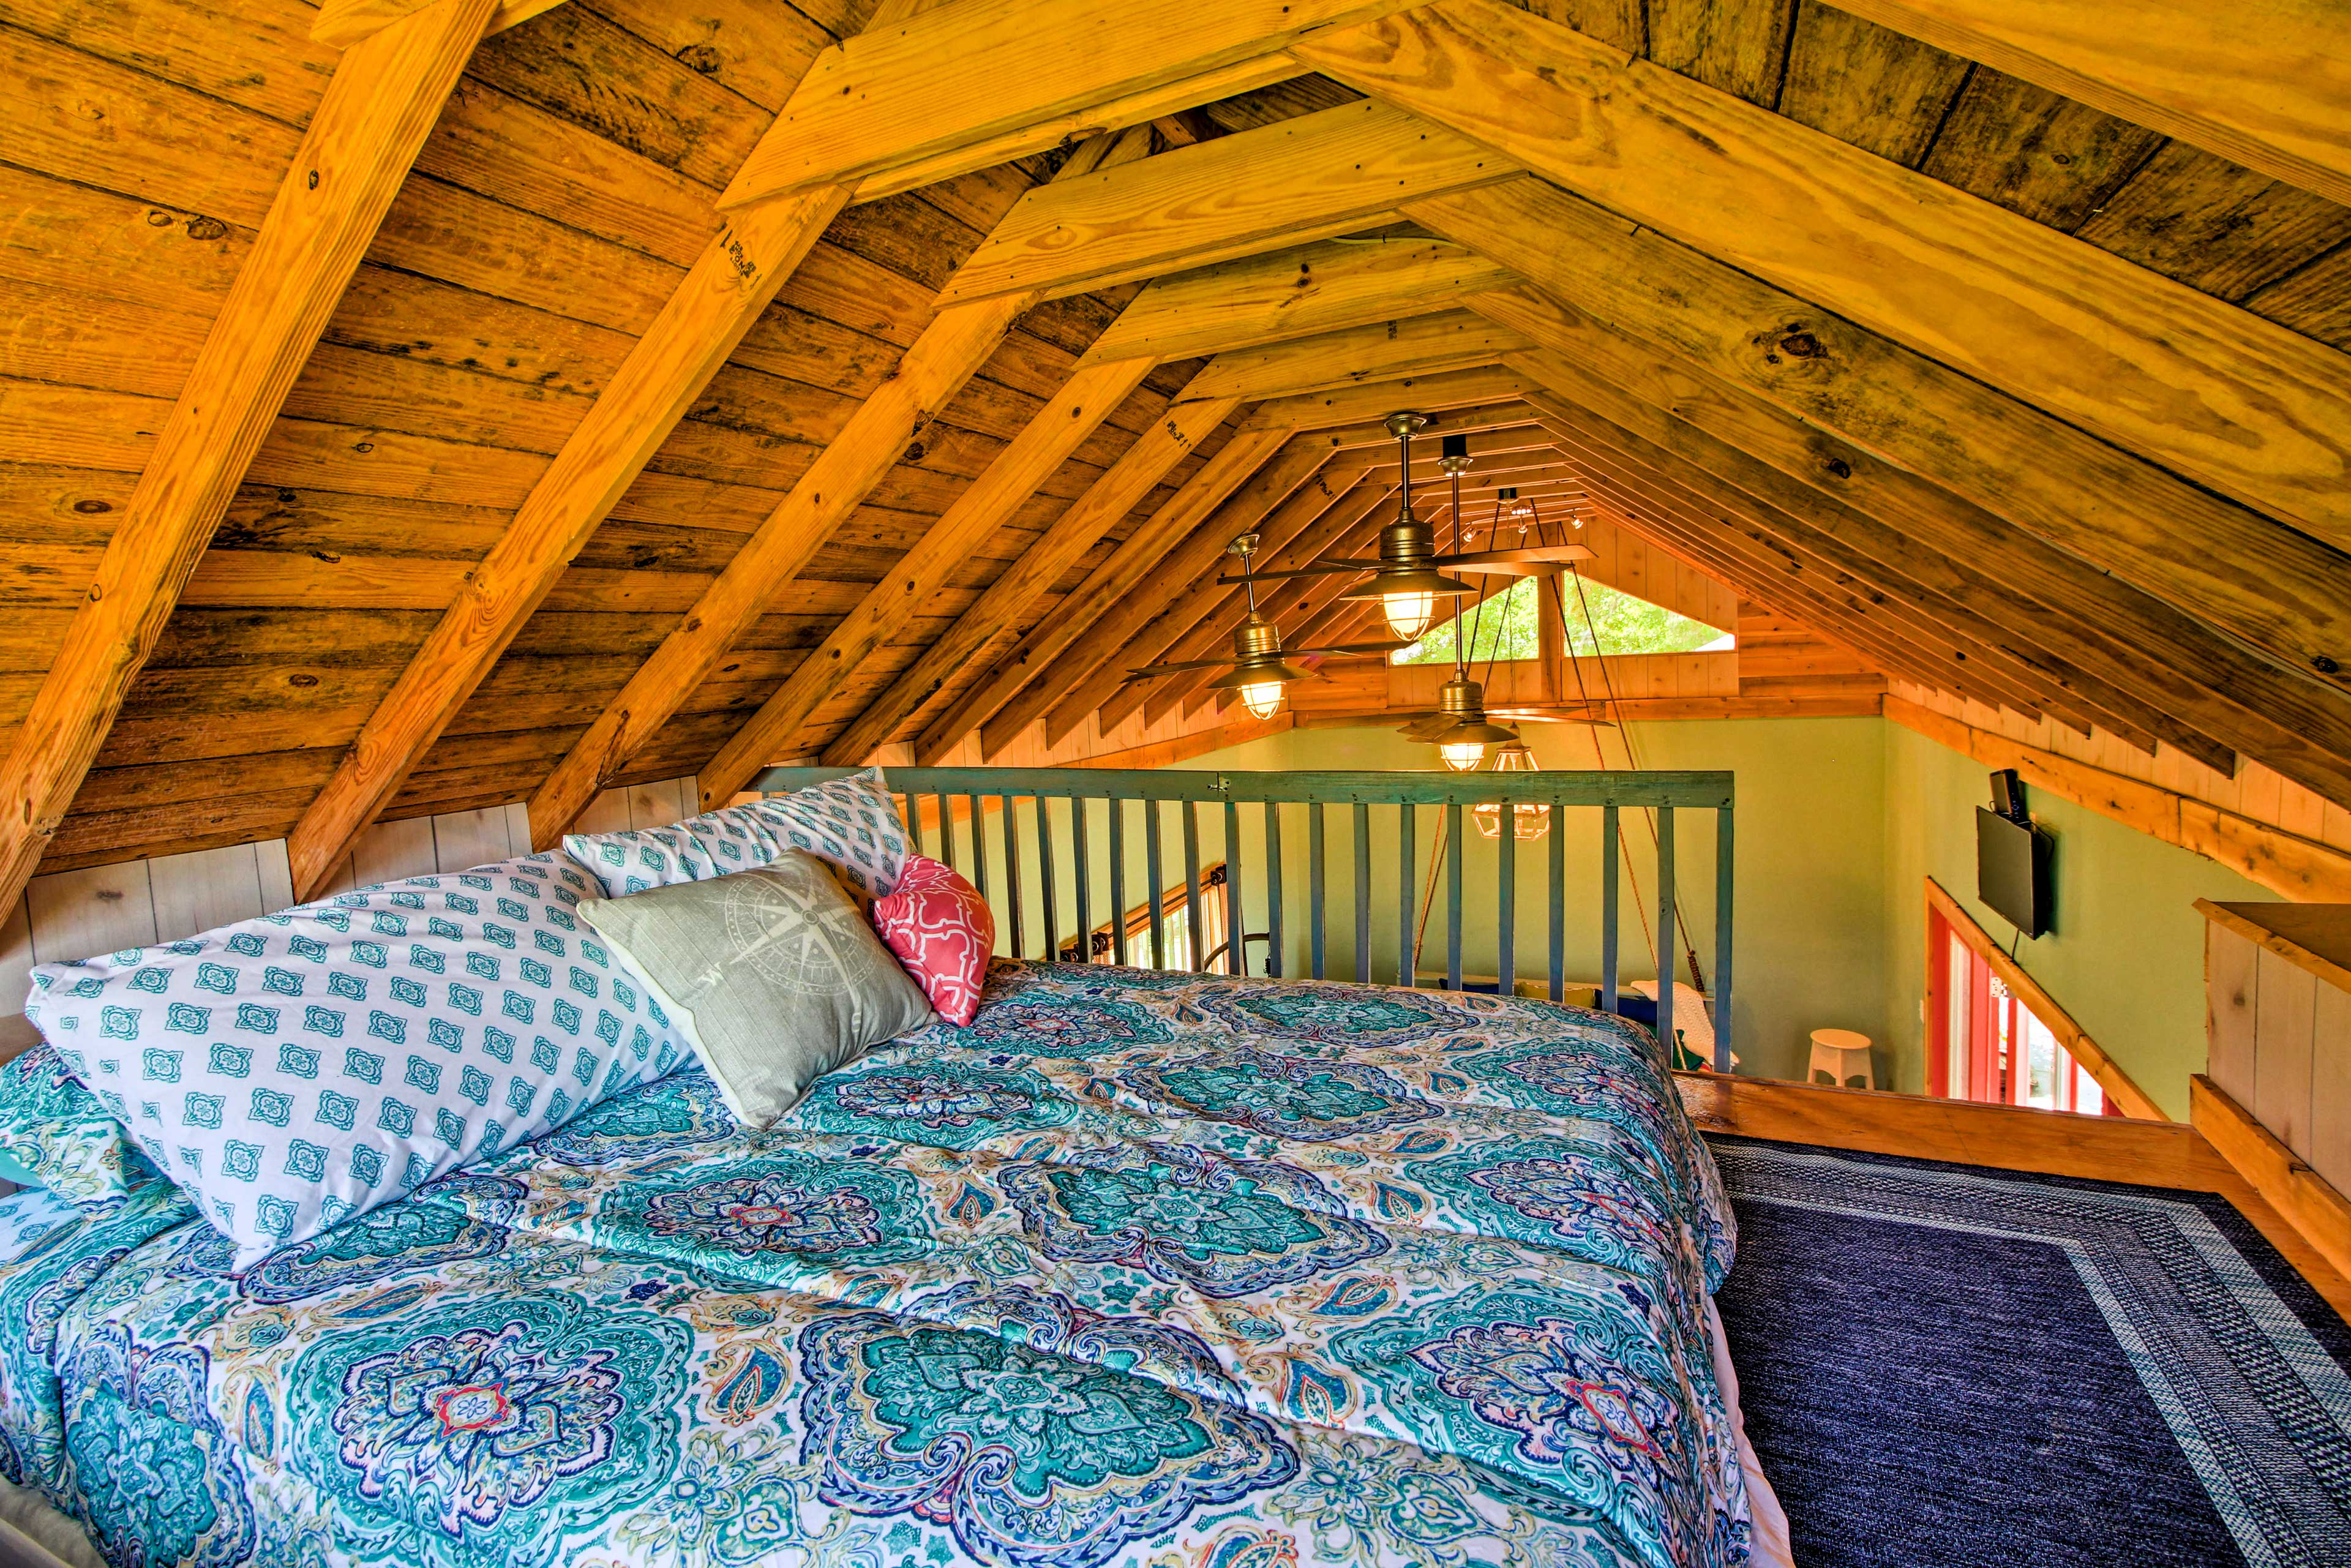 Climb the ladder to the loft which features a full size bed!